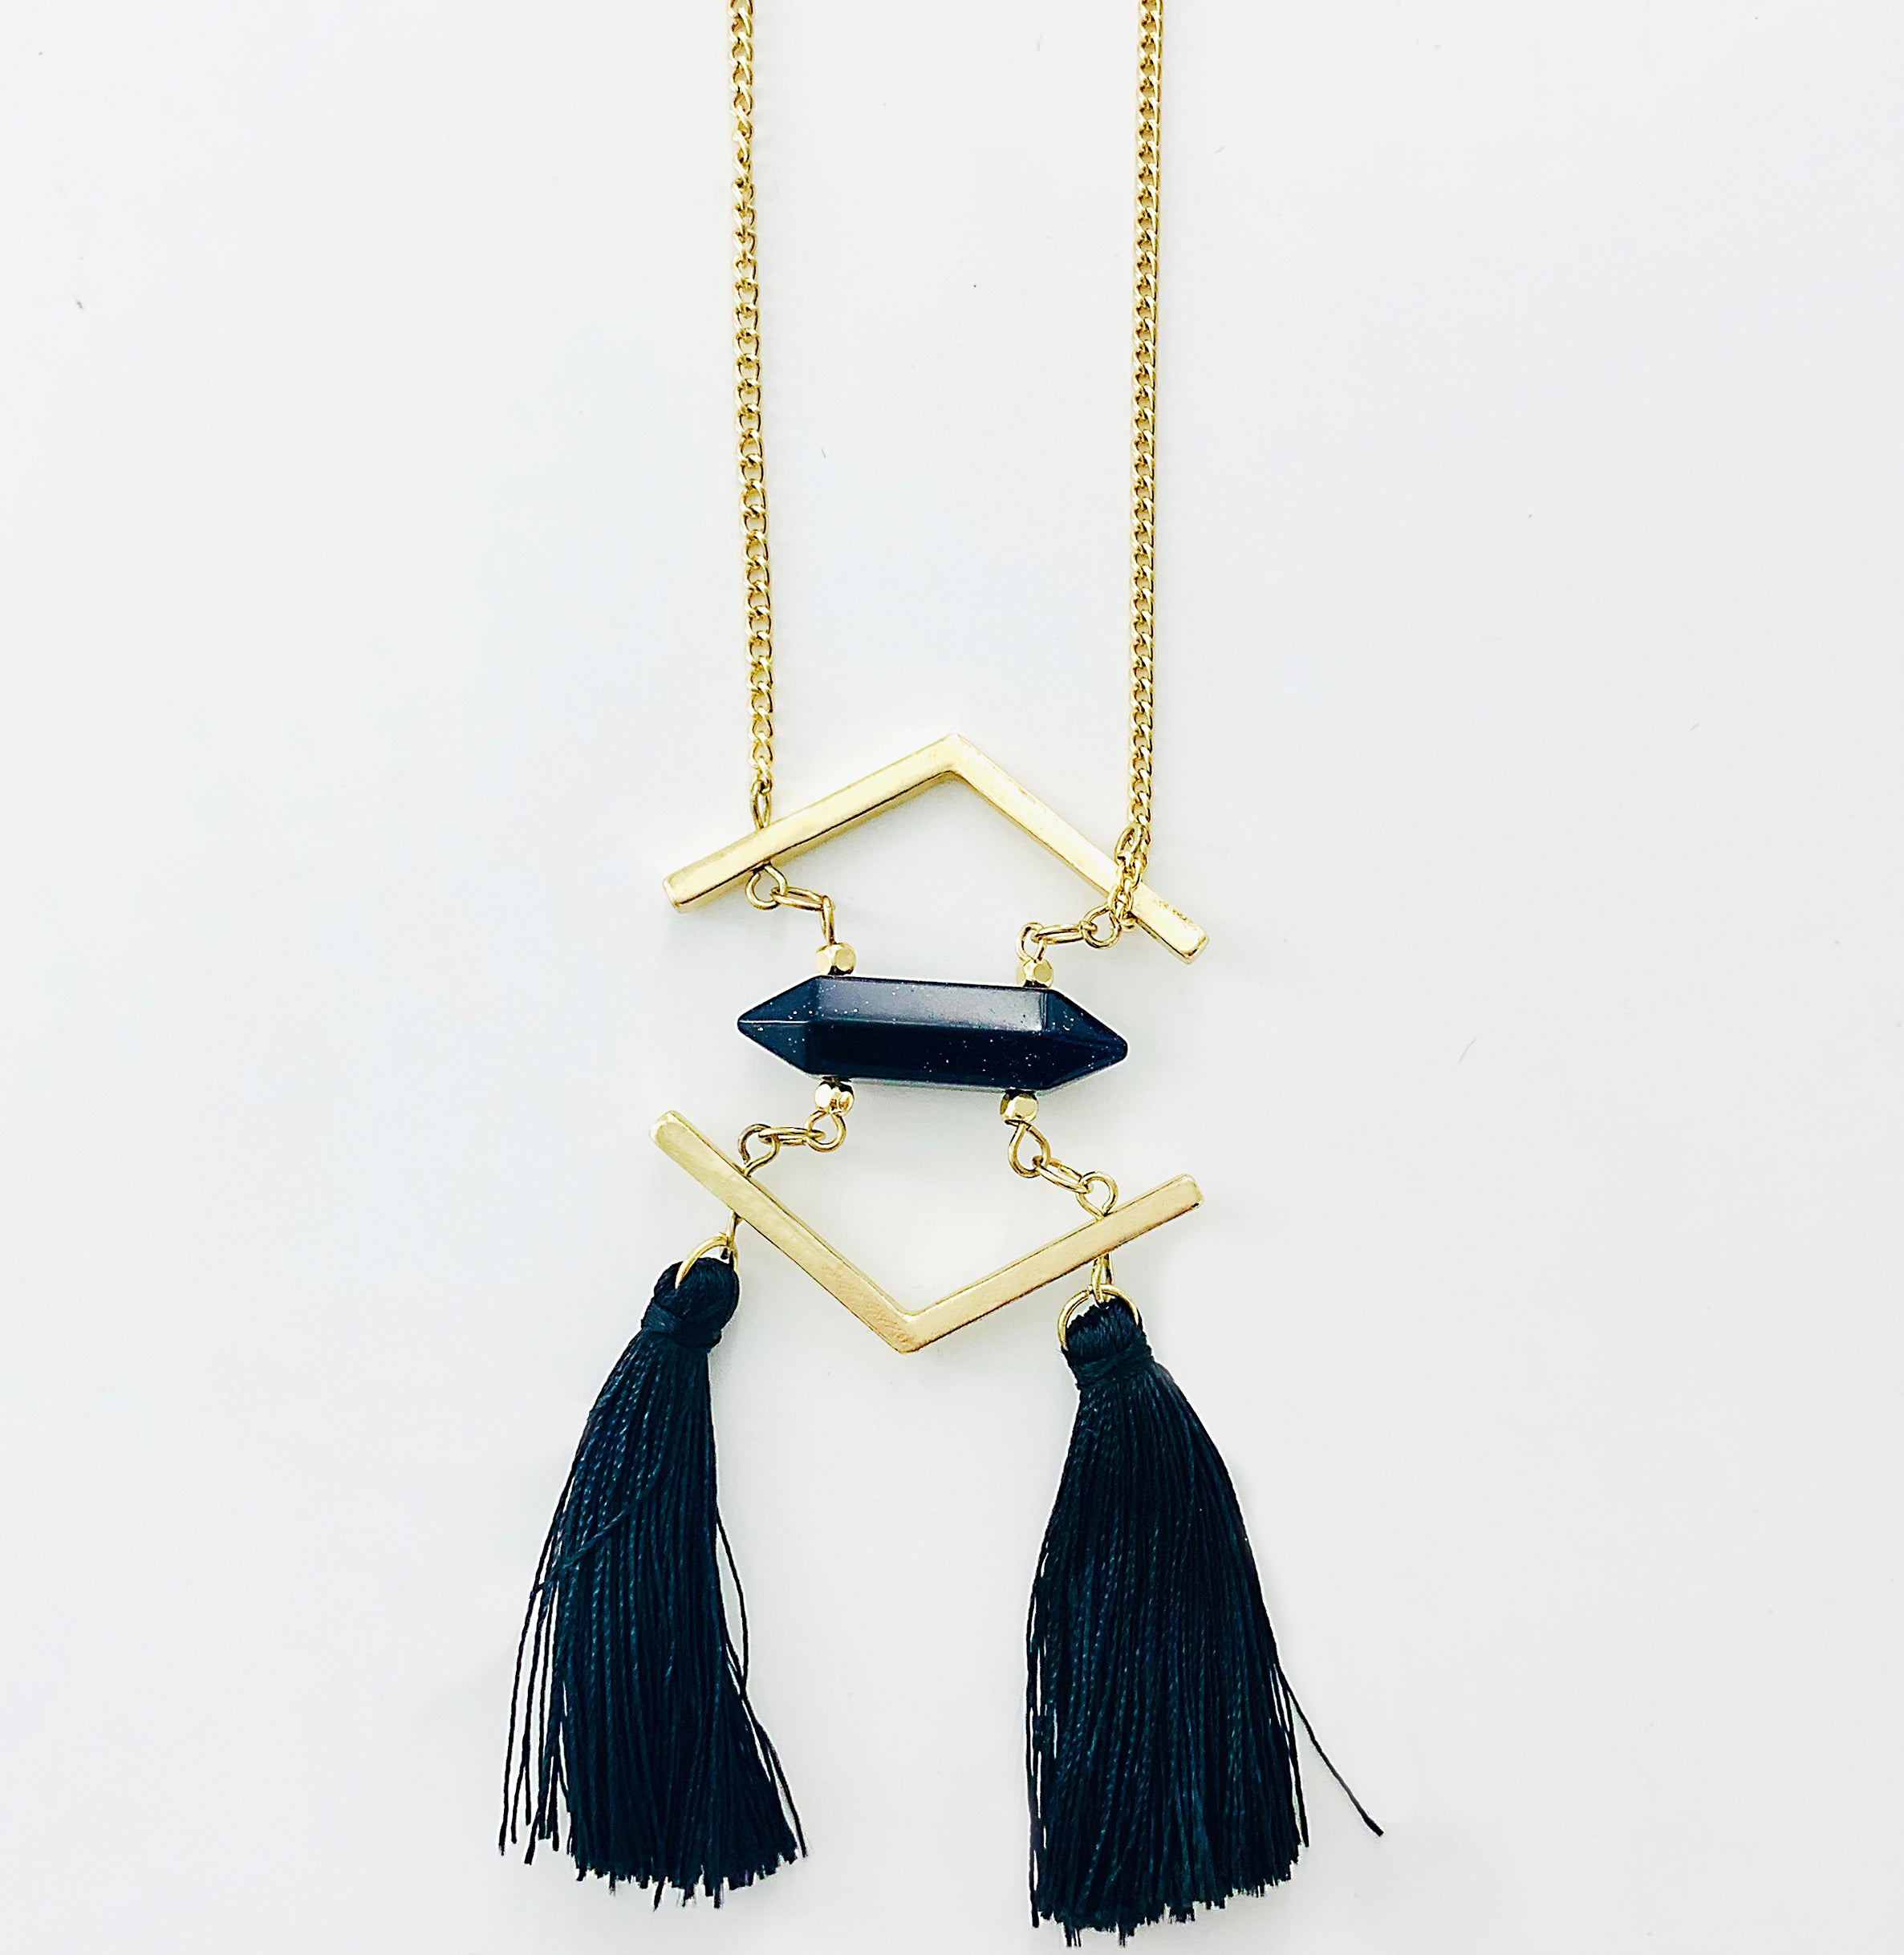 Black Stone with Tassels Pendant on Gold Chain